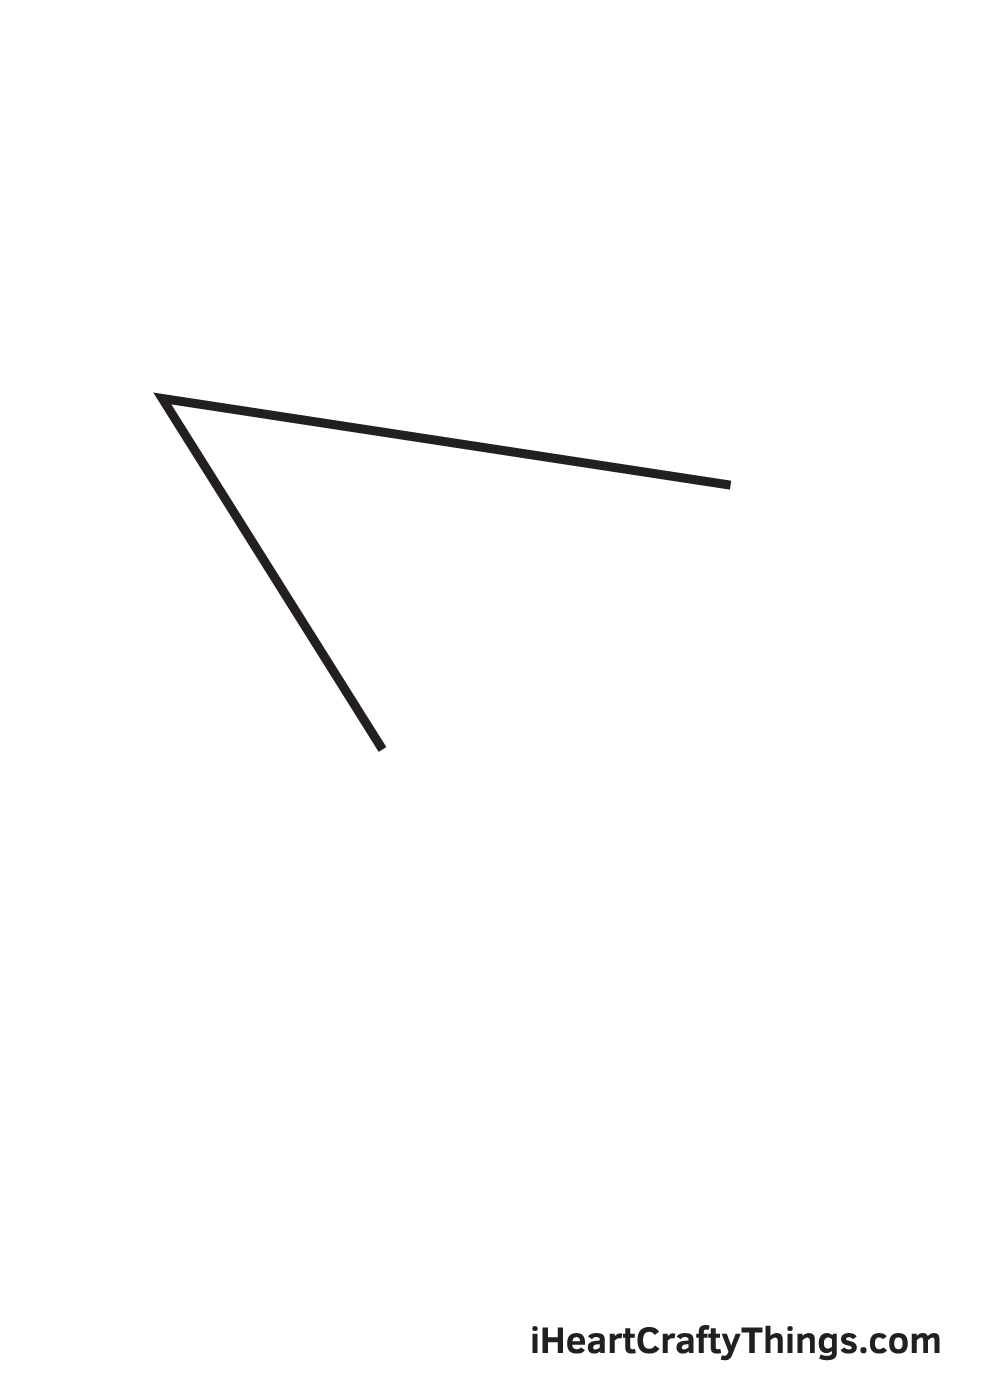 paper airplane drawing step 2